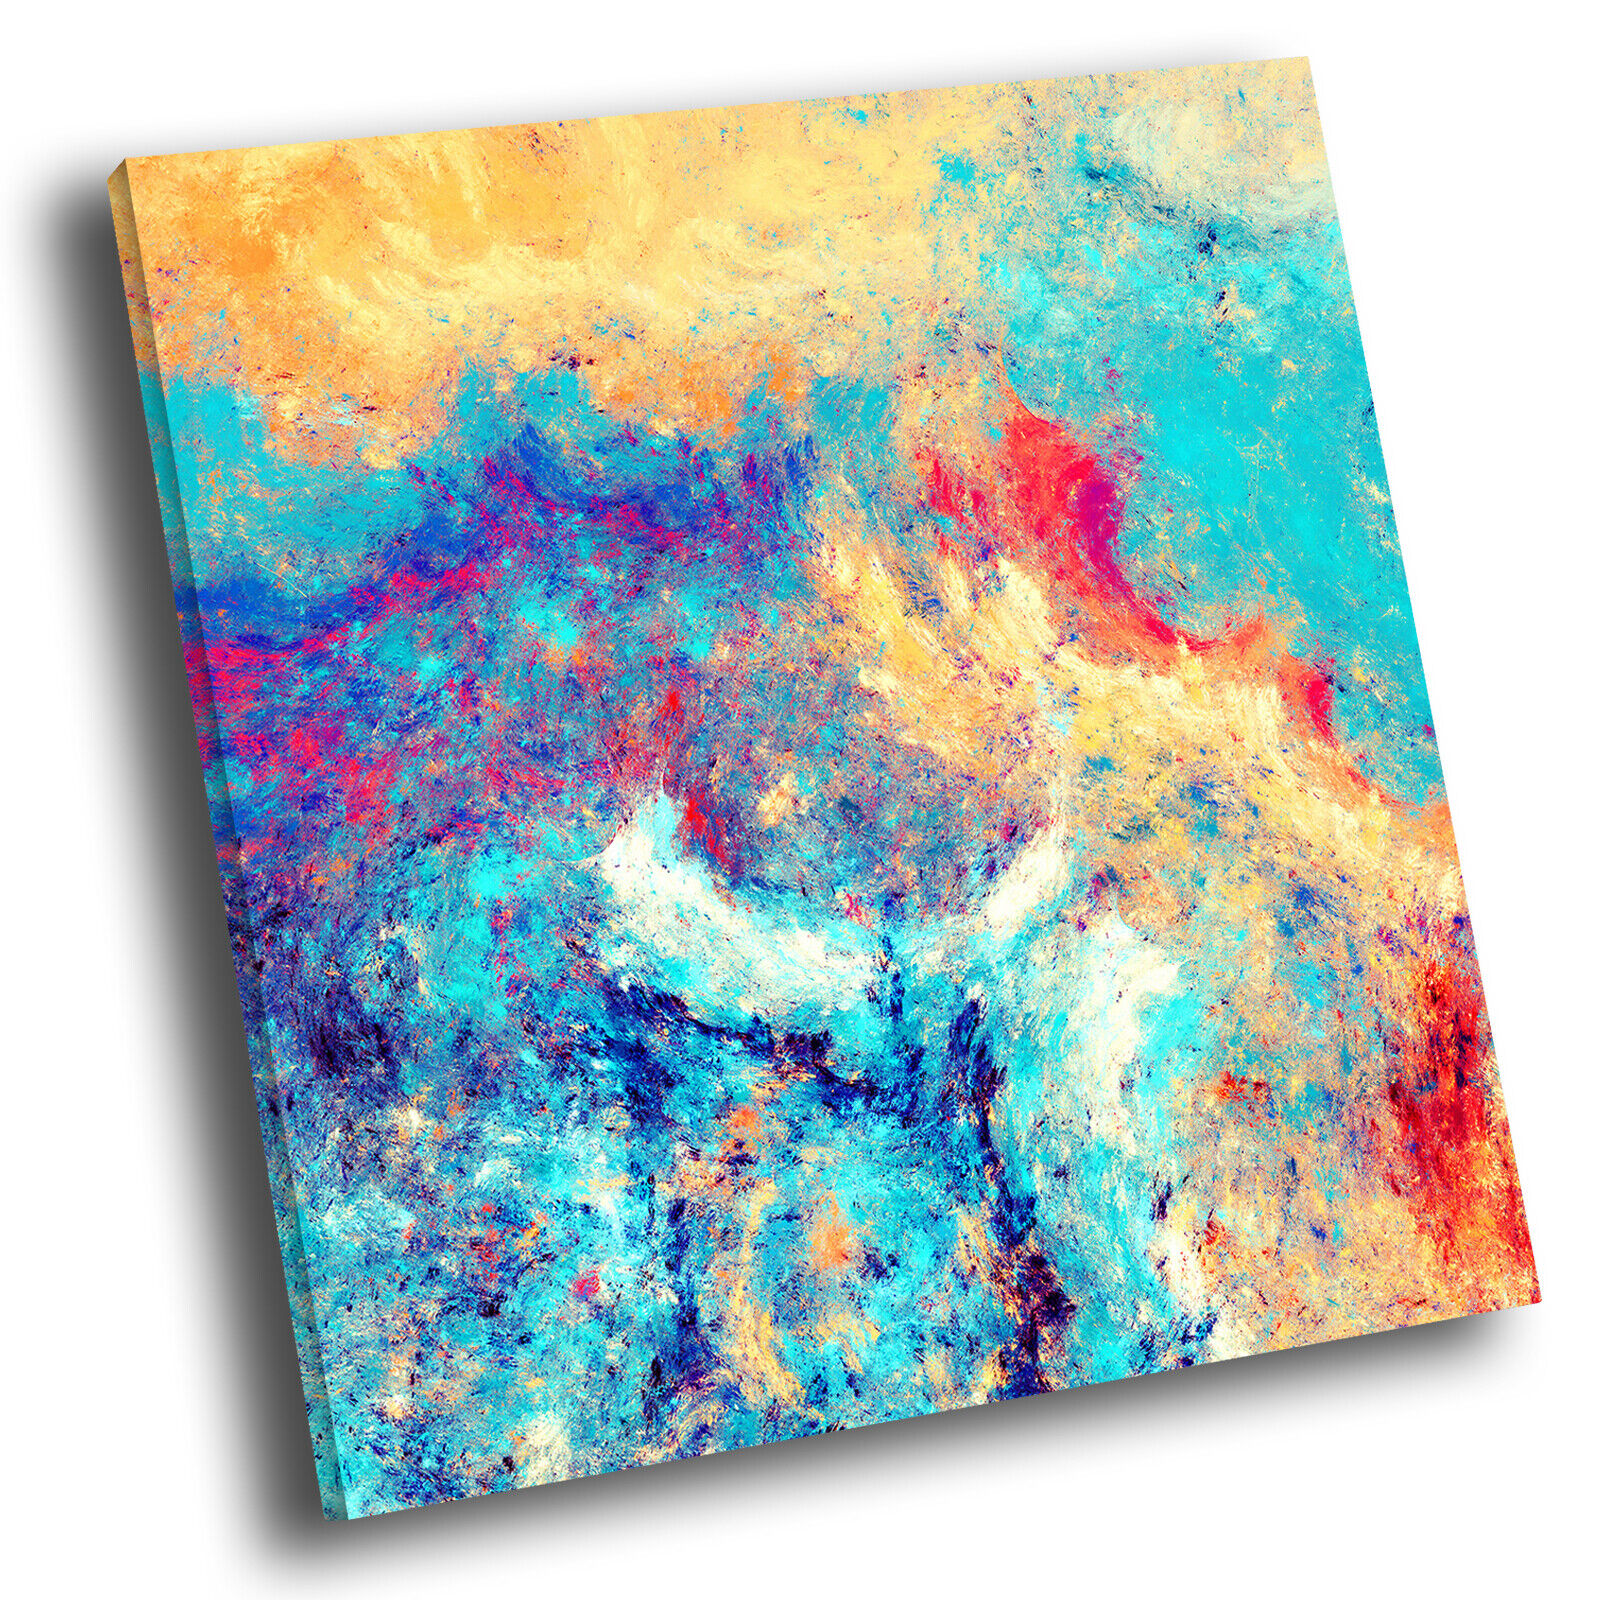 Colourful Blau Gelb Square Abstract Photo Canvas Wall Art Large Picture Prints